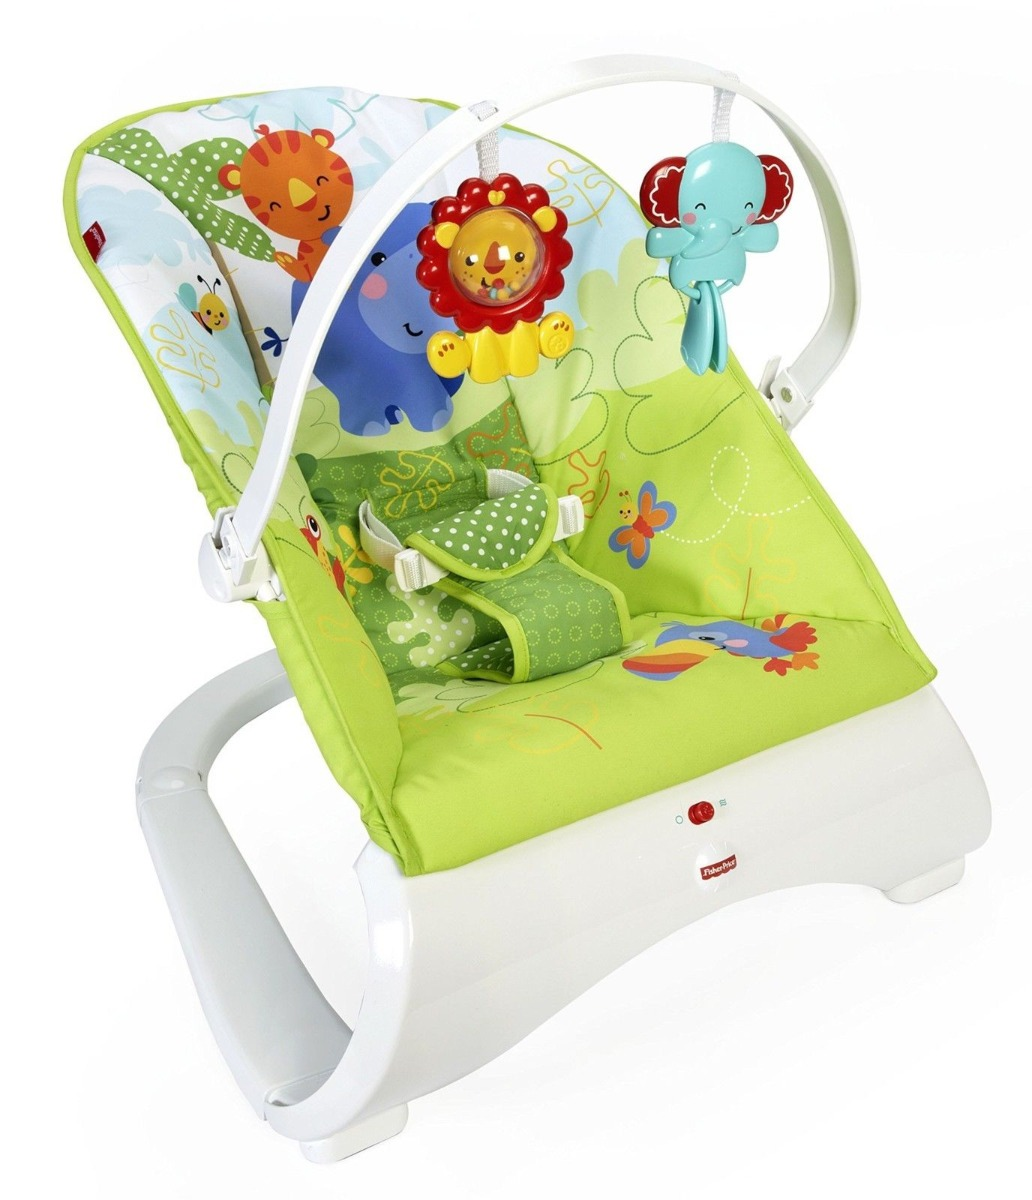 983eff92e Silla Mecedora Fisher Price Rainforest - $ 1.800,00 en Mercado Libre